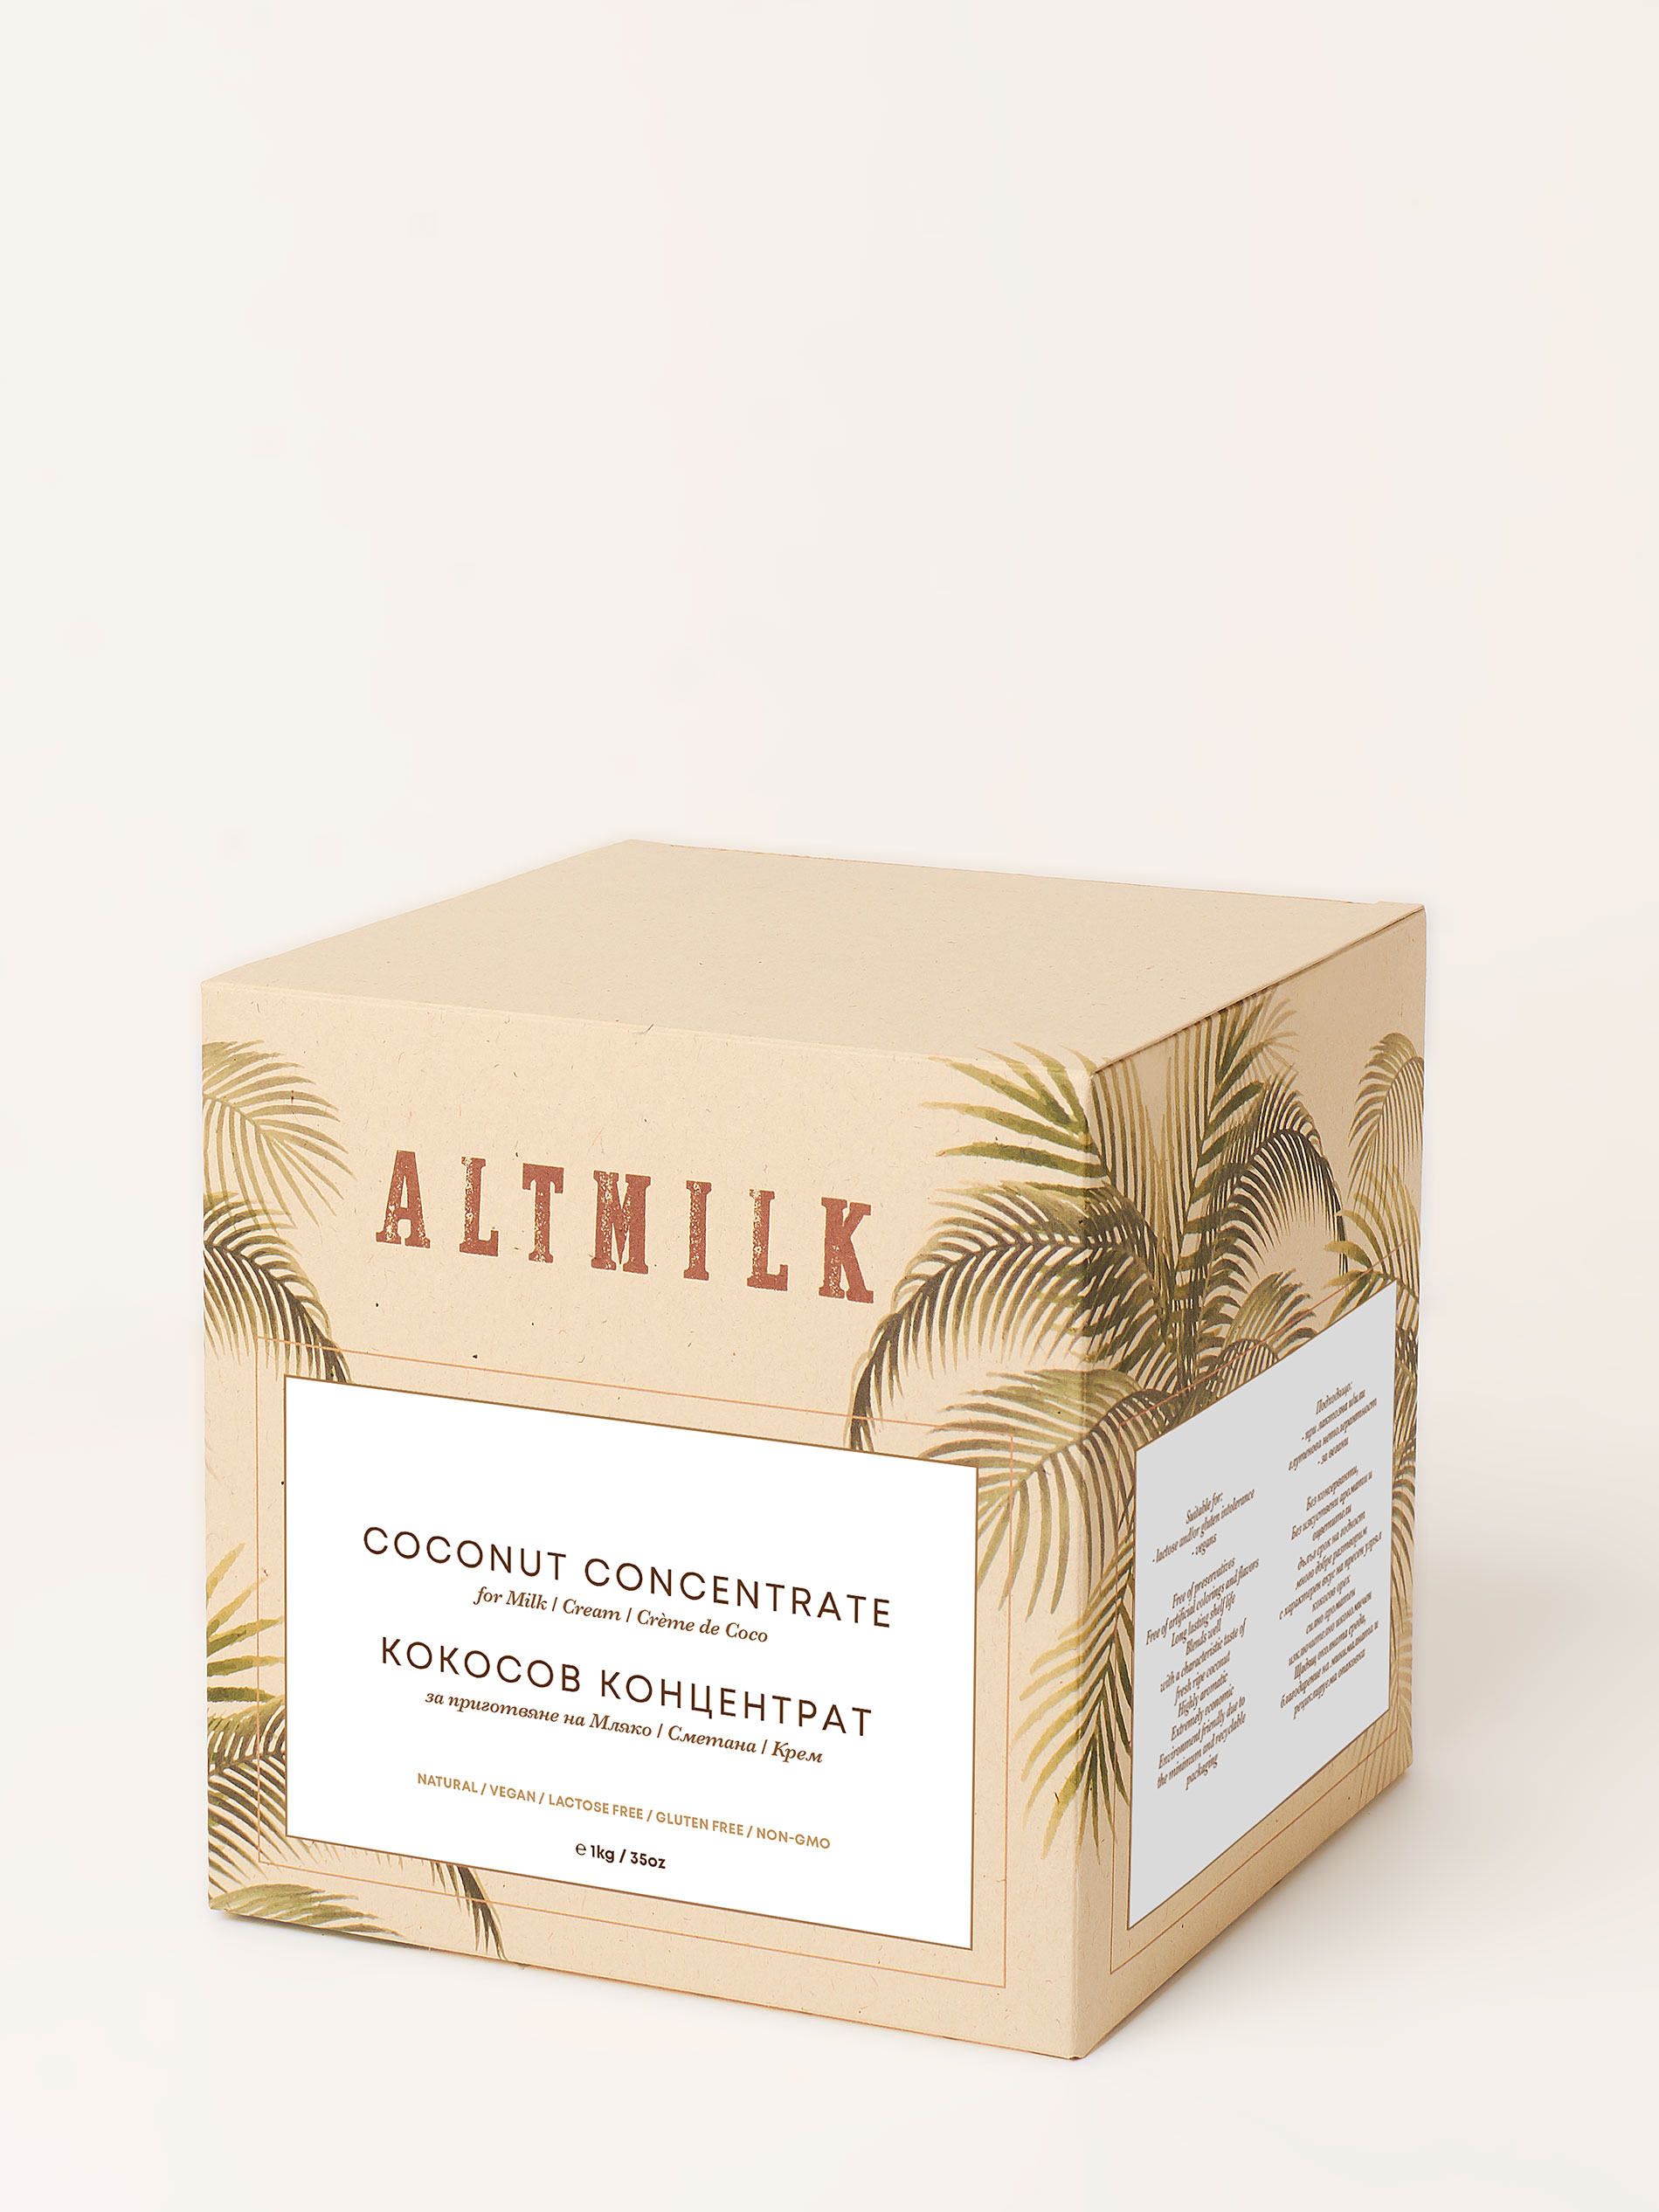 altmilk-boxes-01-flat